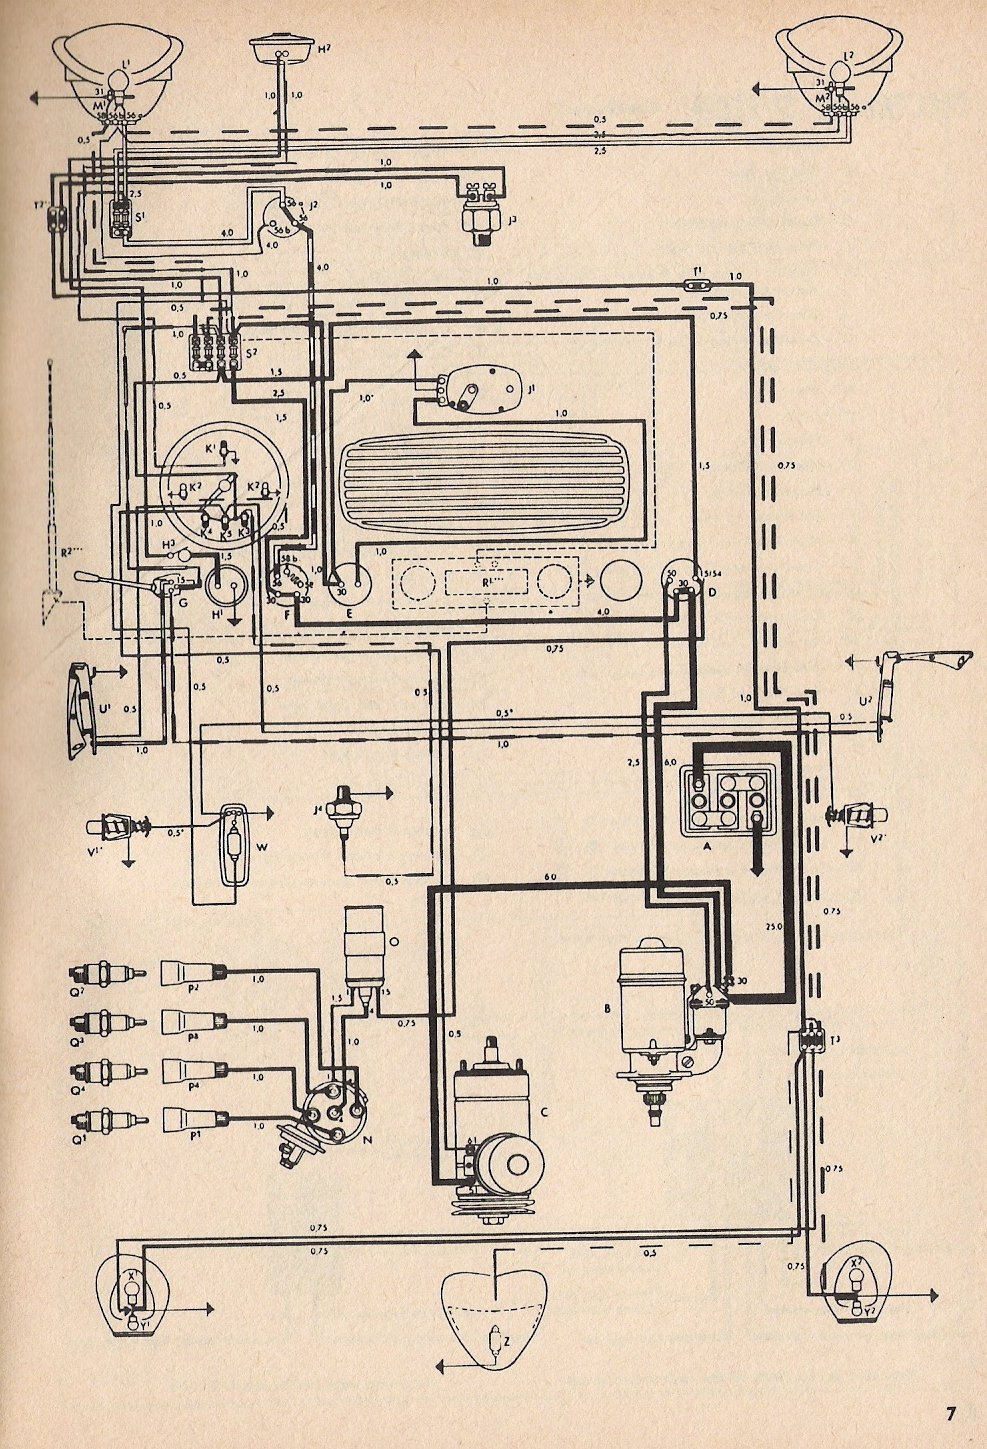 thesamba com type 1 wiring diagrams rh thesamba com VW Bus Wiring Diagram 1956 vw beetle wiring diagram